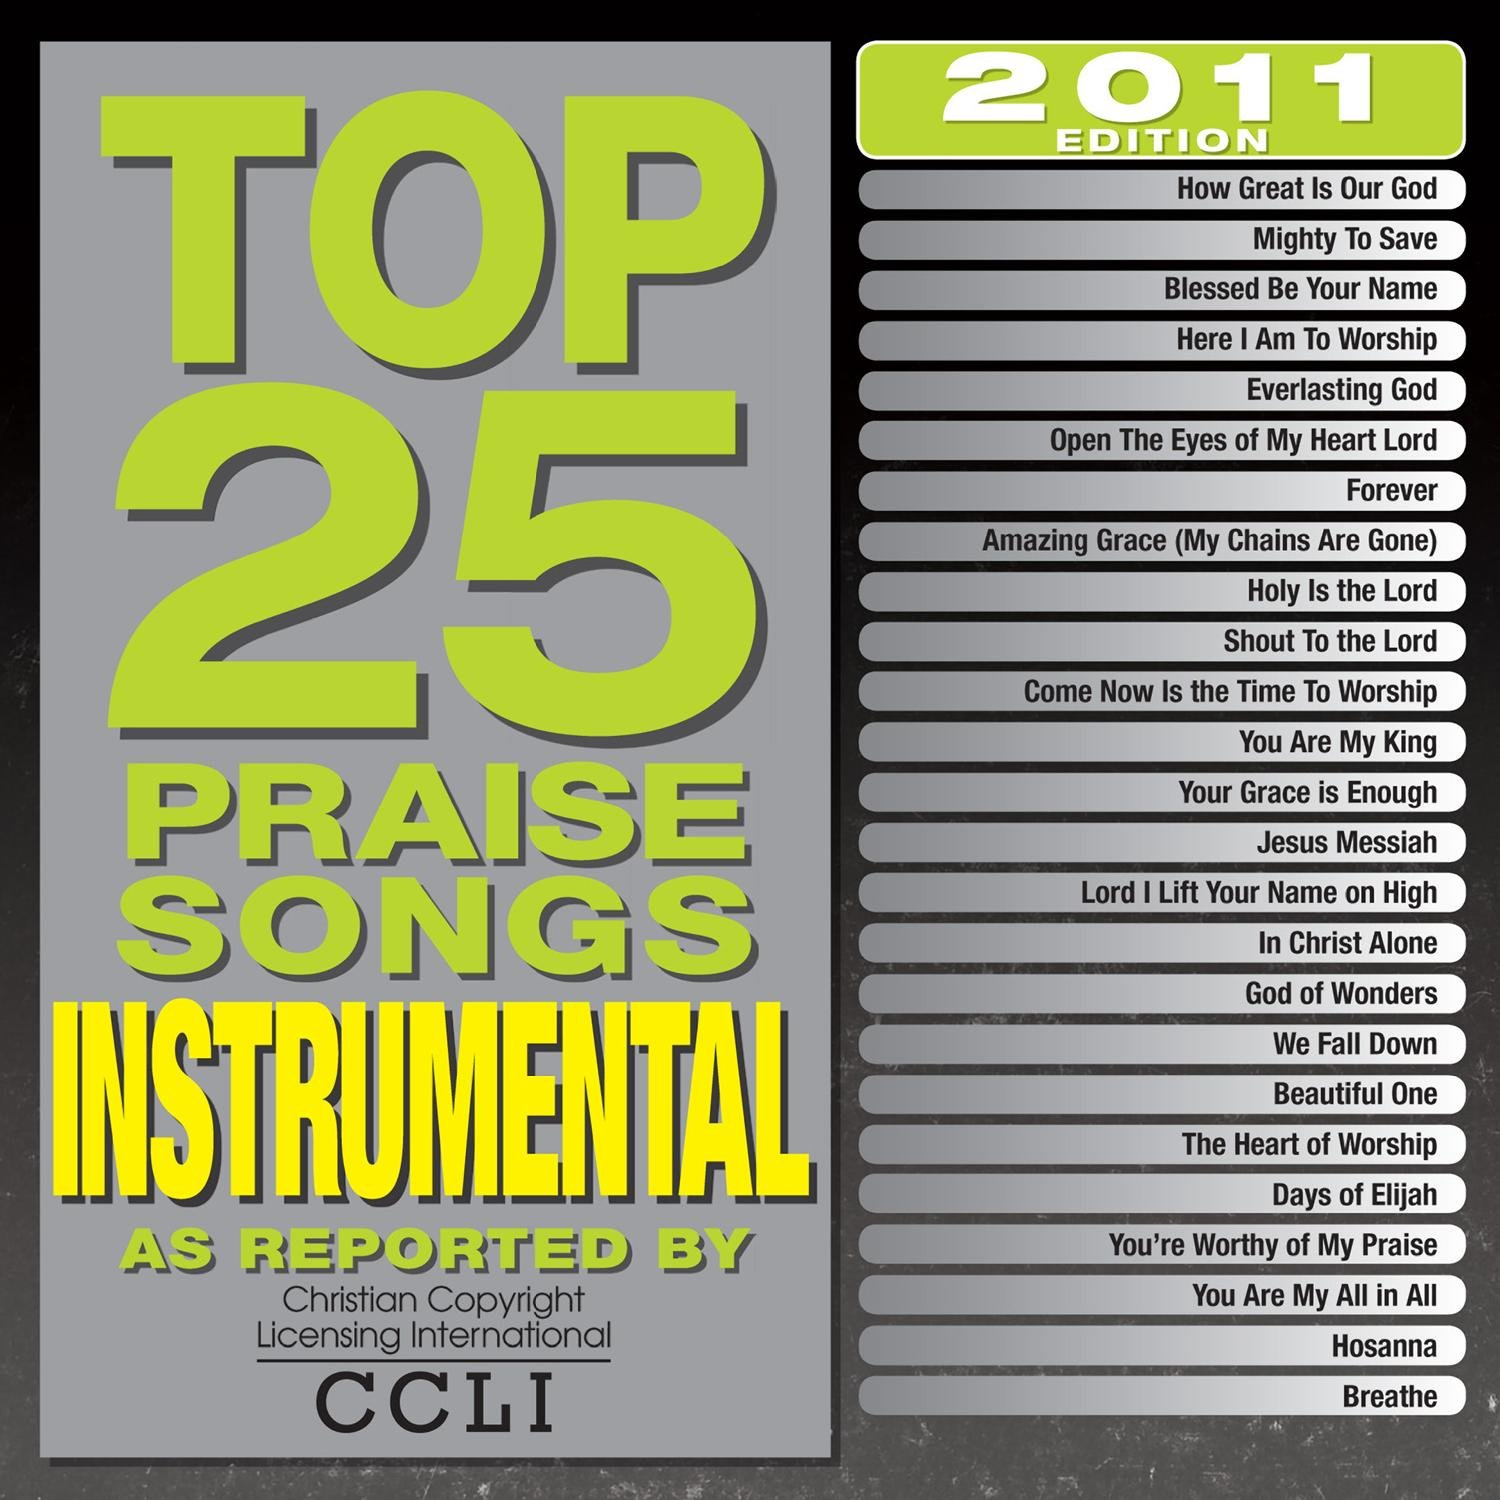 Top 25 Instrumental Praise [2 CD] by Capitol Christian Distribution